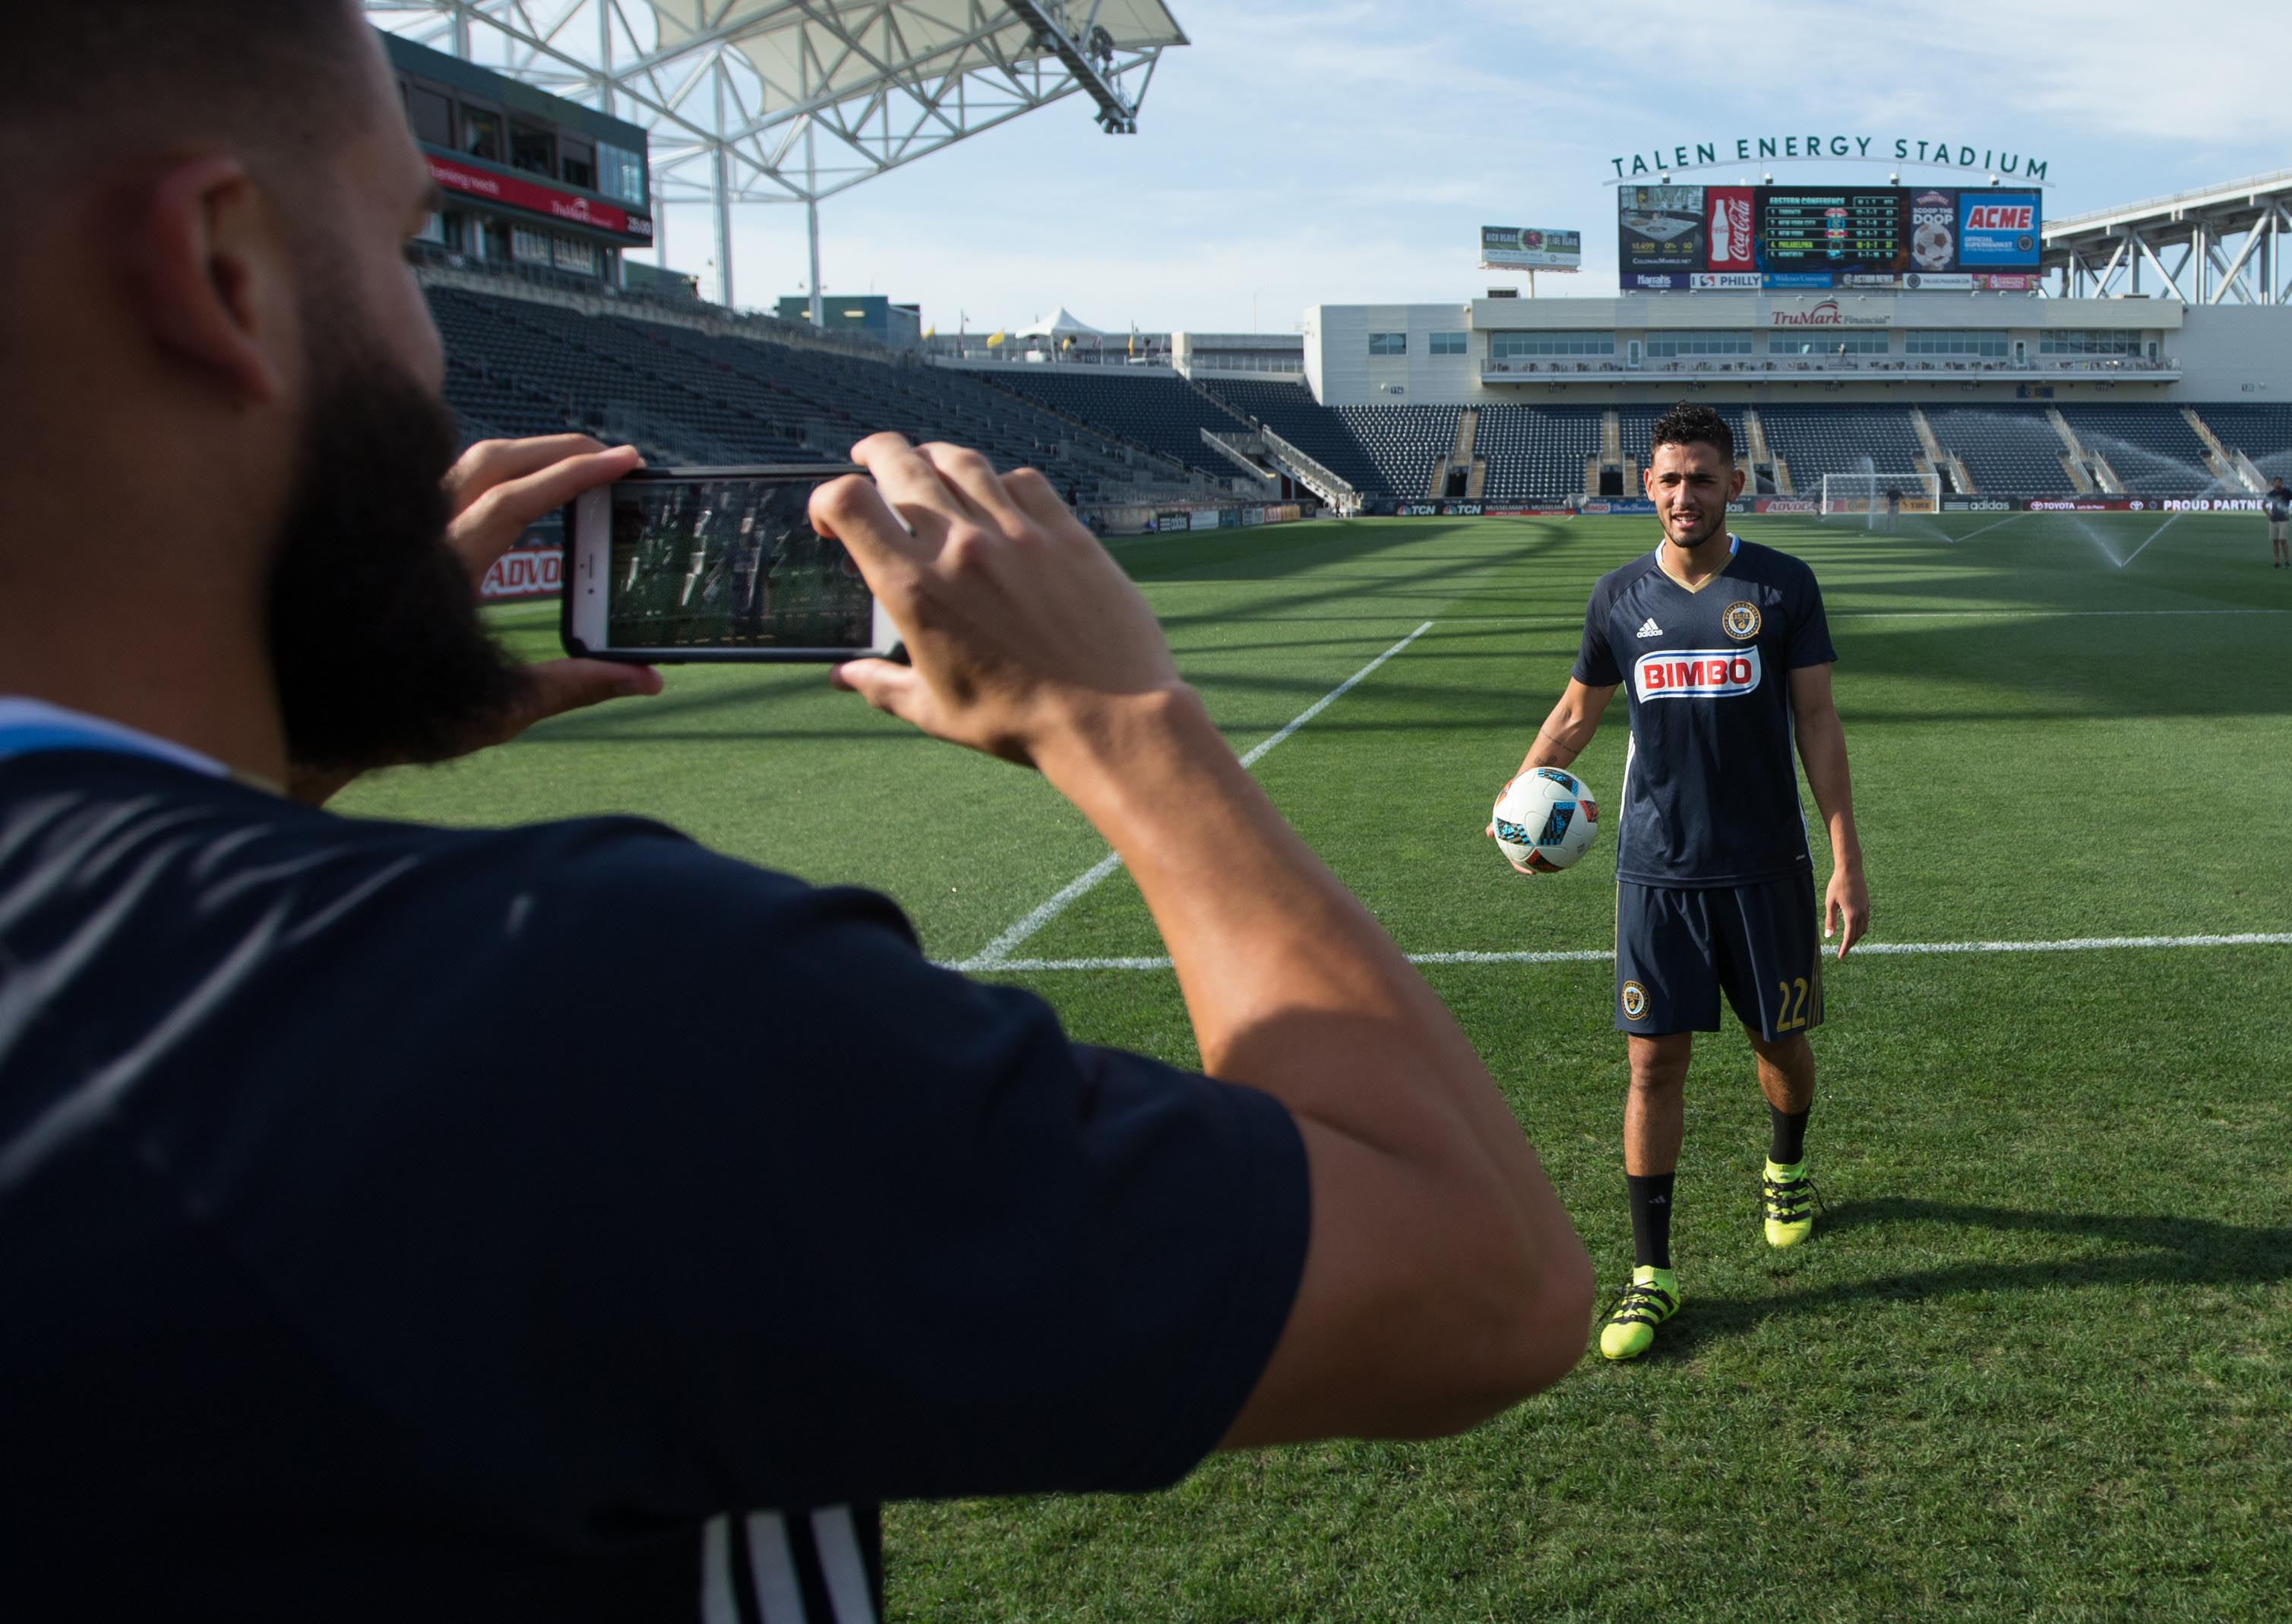 5 Ways Athletes Can Get More Instagram Views